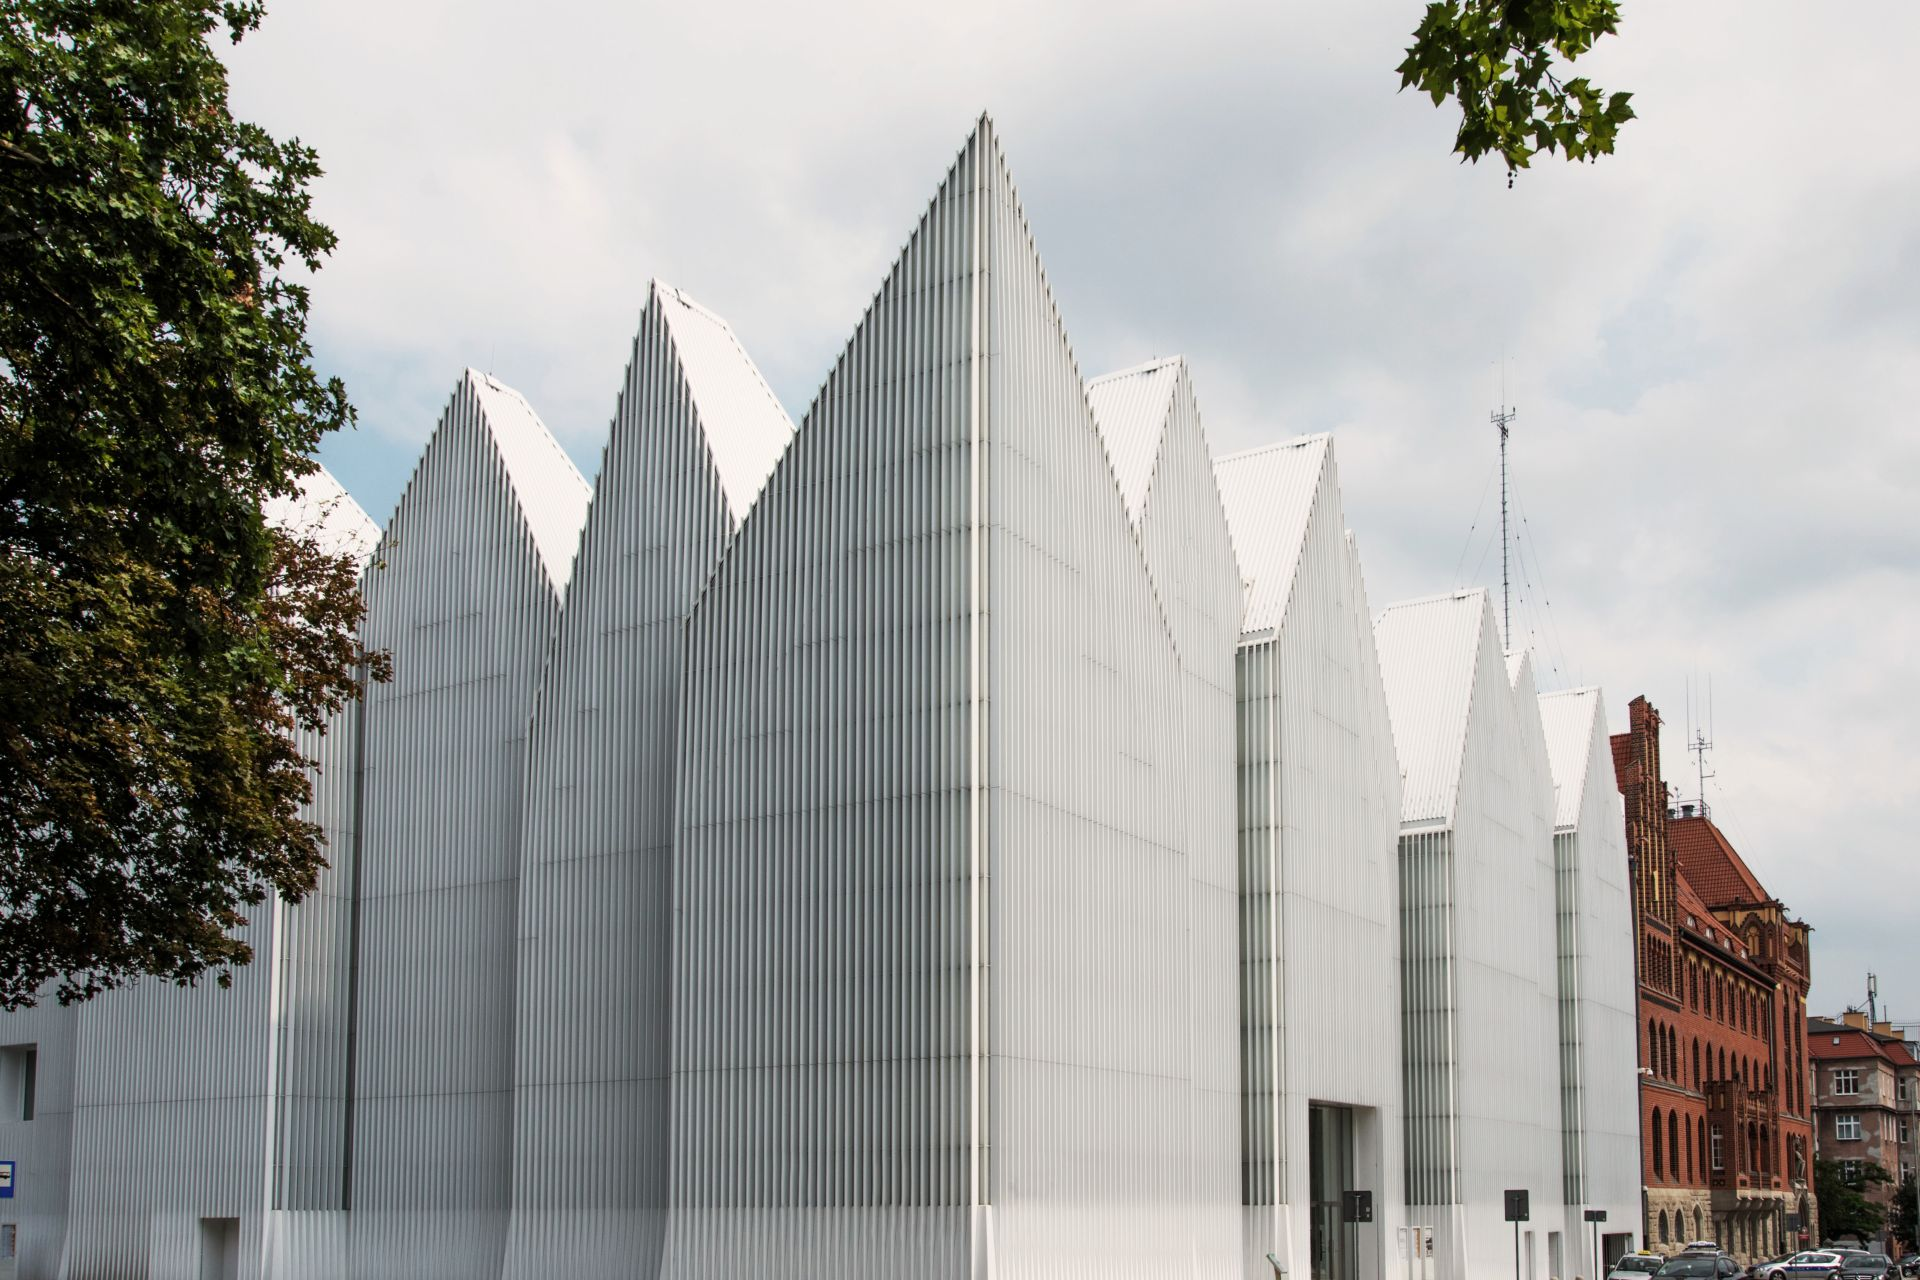 White facade of Szczecin Philharmonic Hall contrasting with old red buildings